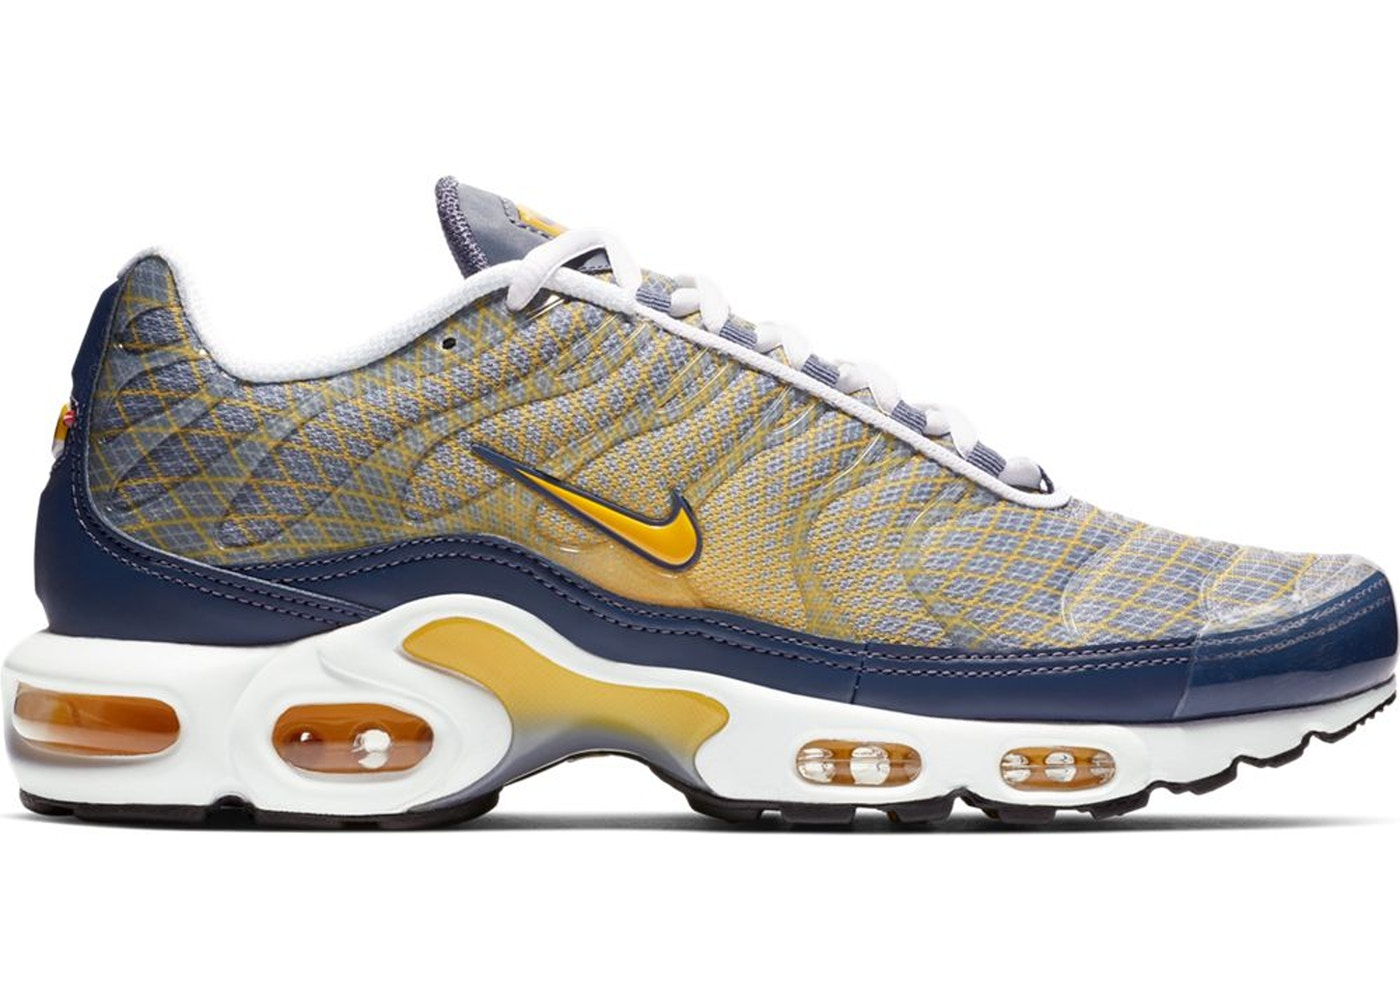 sports shoes ff692 d1125 Buy Nike Air Max Plus Shoes & Deadstock Sneakers